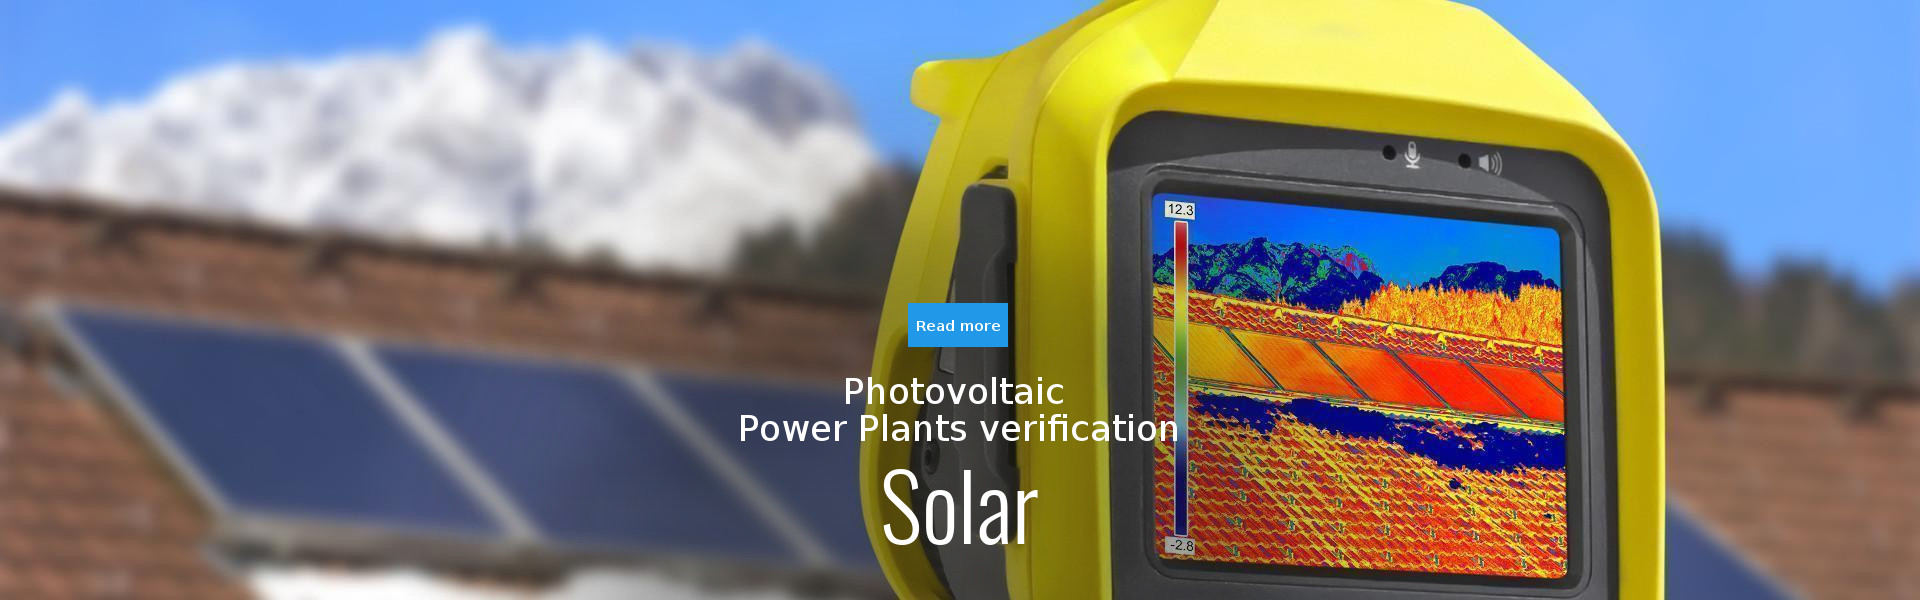 Photovoltaic POWER PLANTS verification